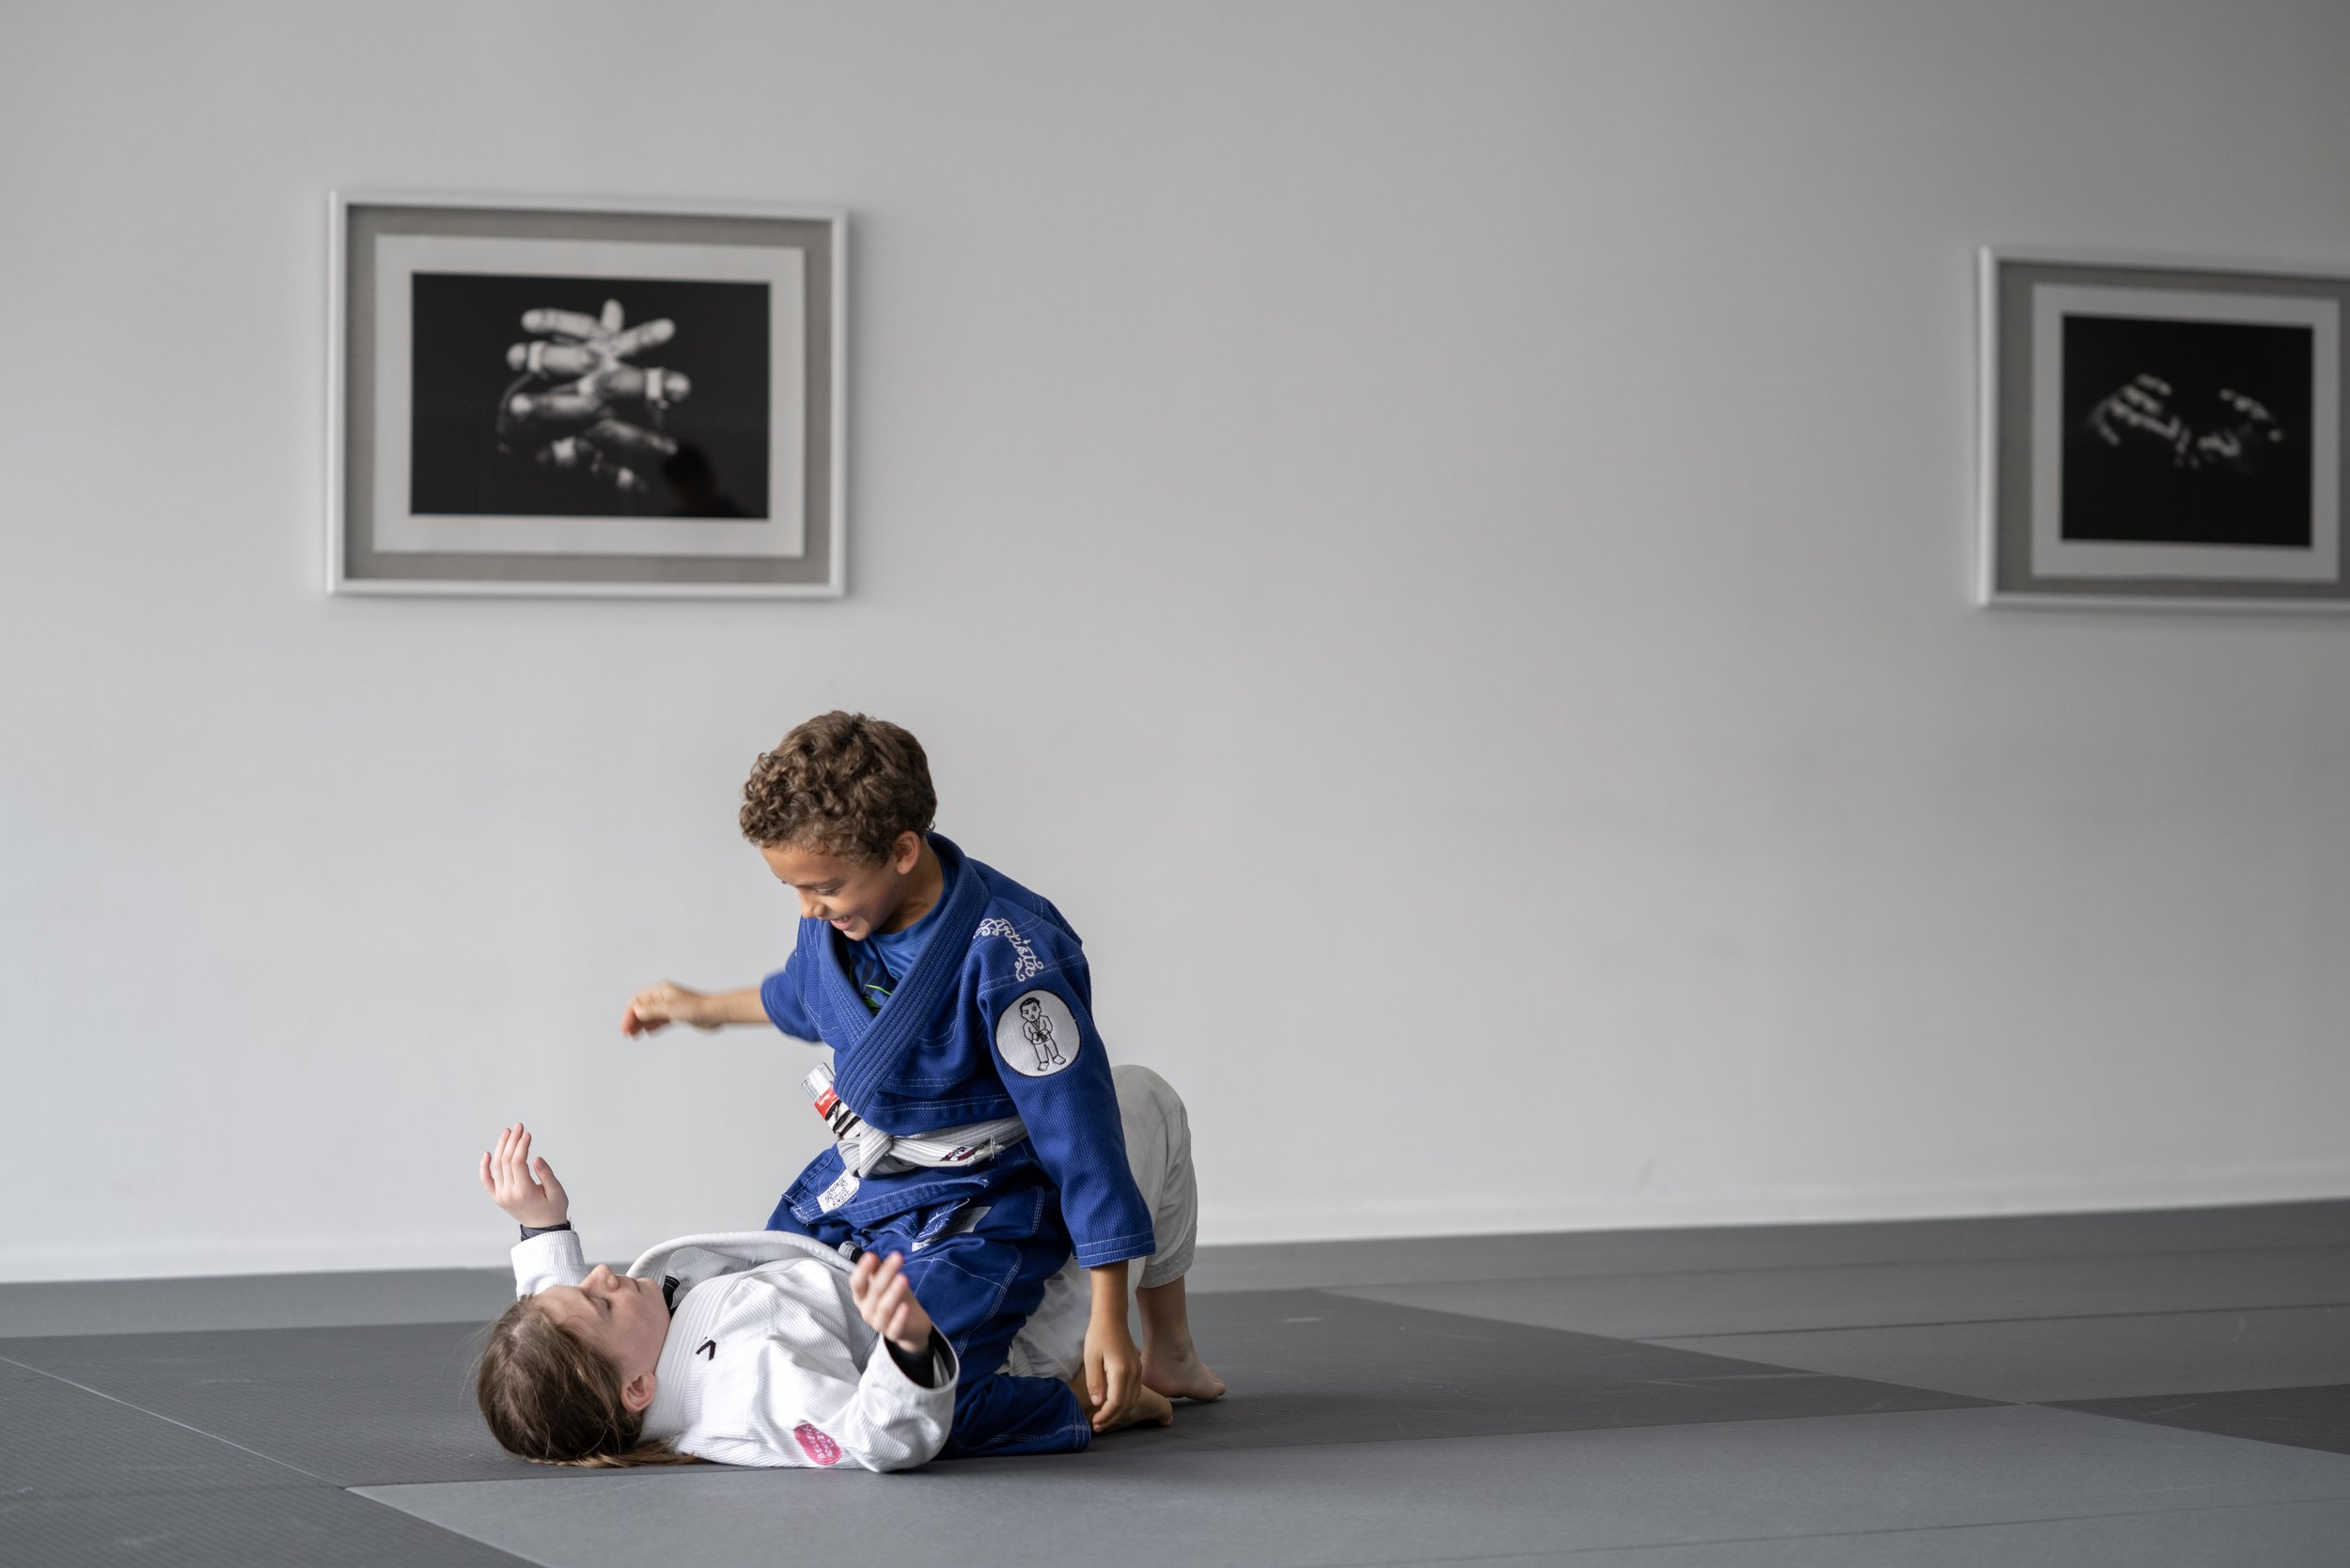 - AGES 8-12Our Big Artists program is designed to learn self-defense and gain confidence! In these programs we focus on agility as well as the basics of Jiu-Jitsu. Our goal is for our kids to learn the principles of Jiu-Jitsu along with coordination, respect, discipline and socializing with new friends.